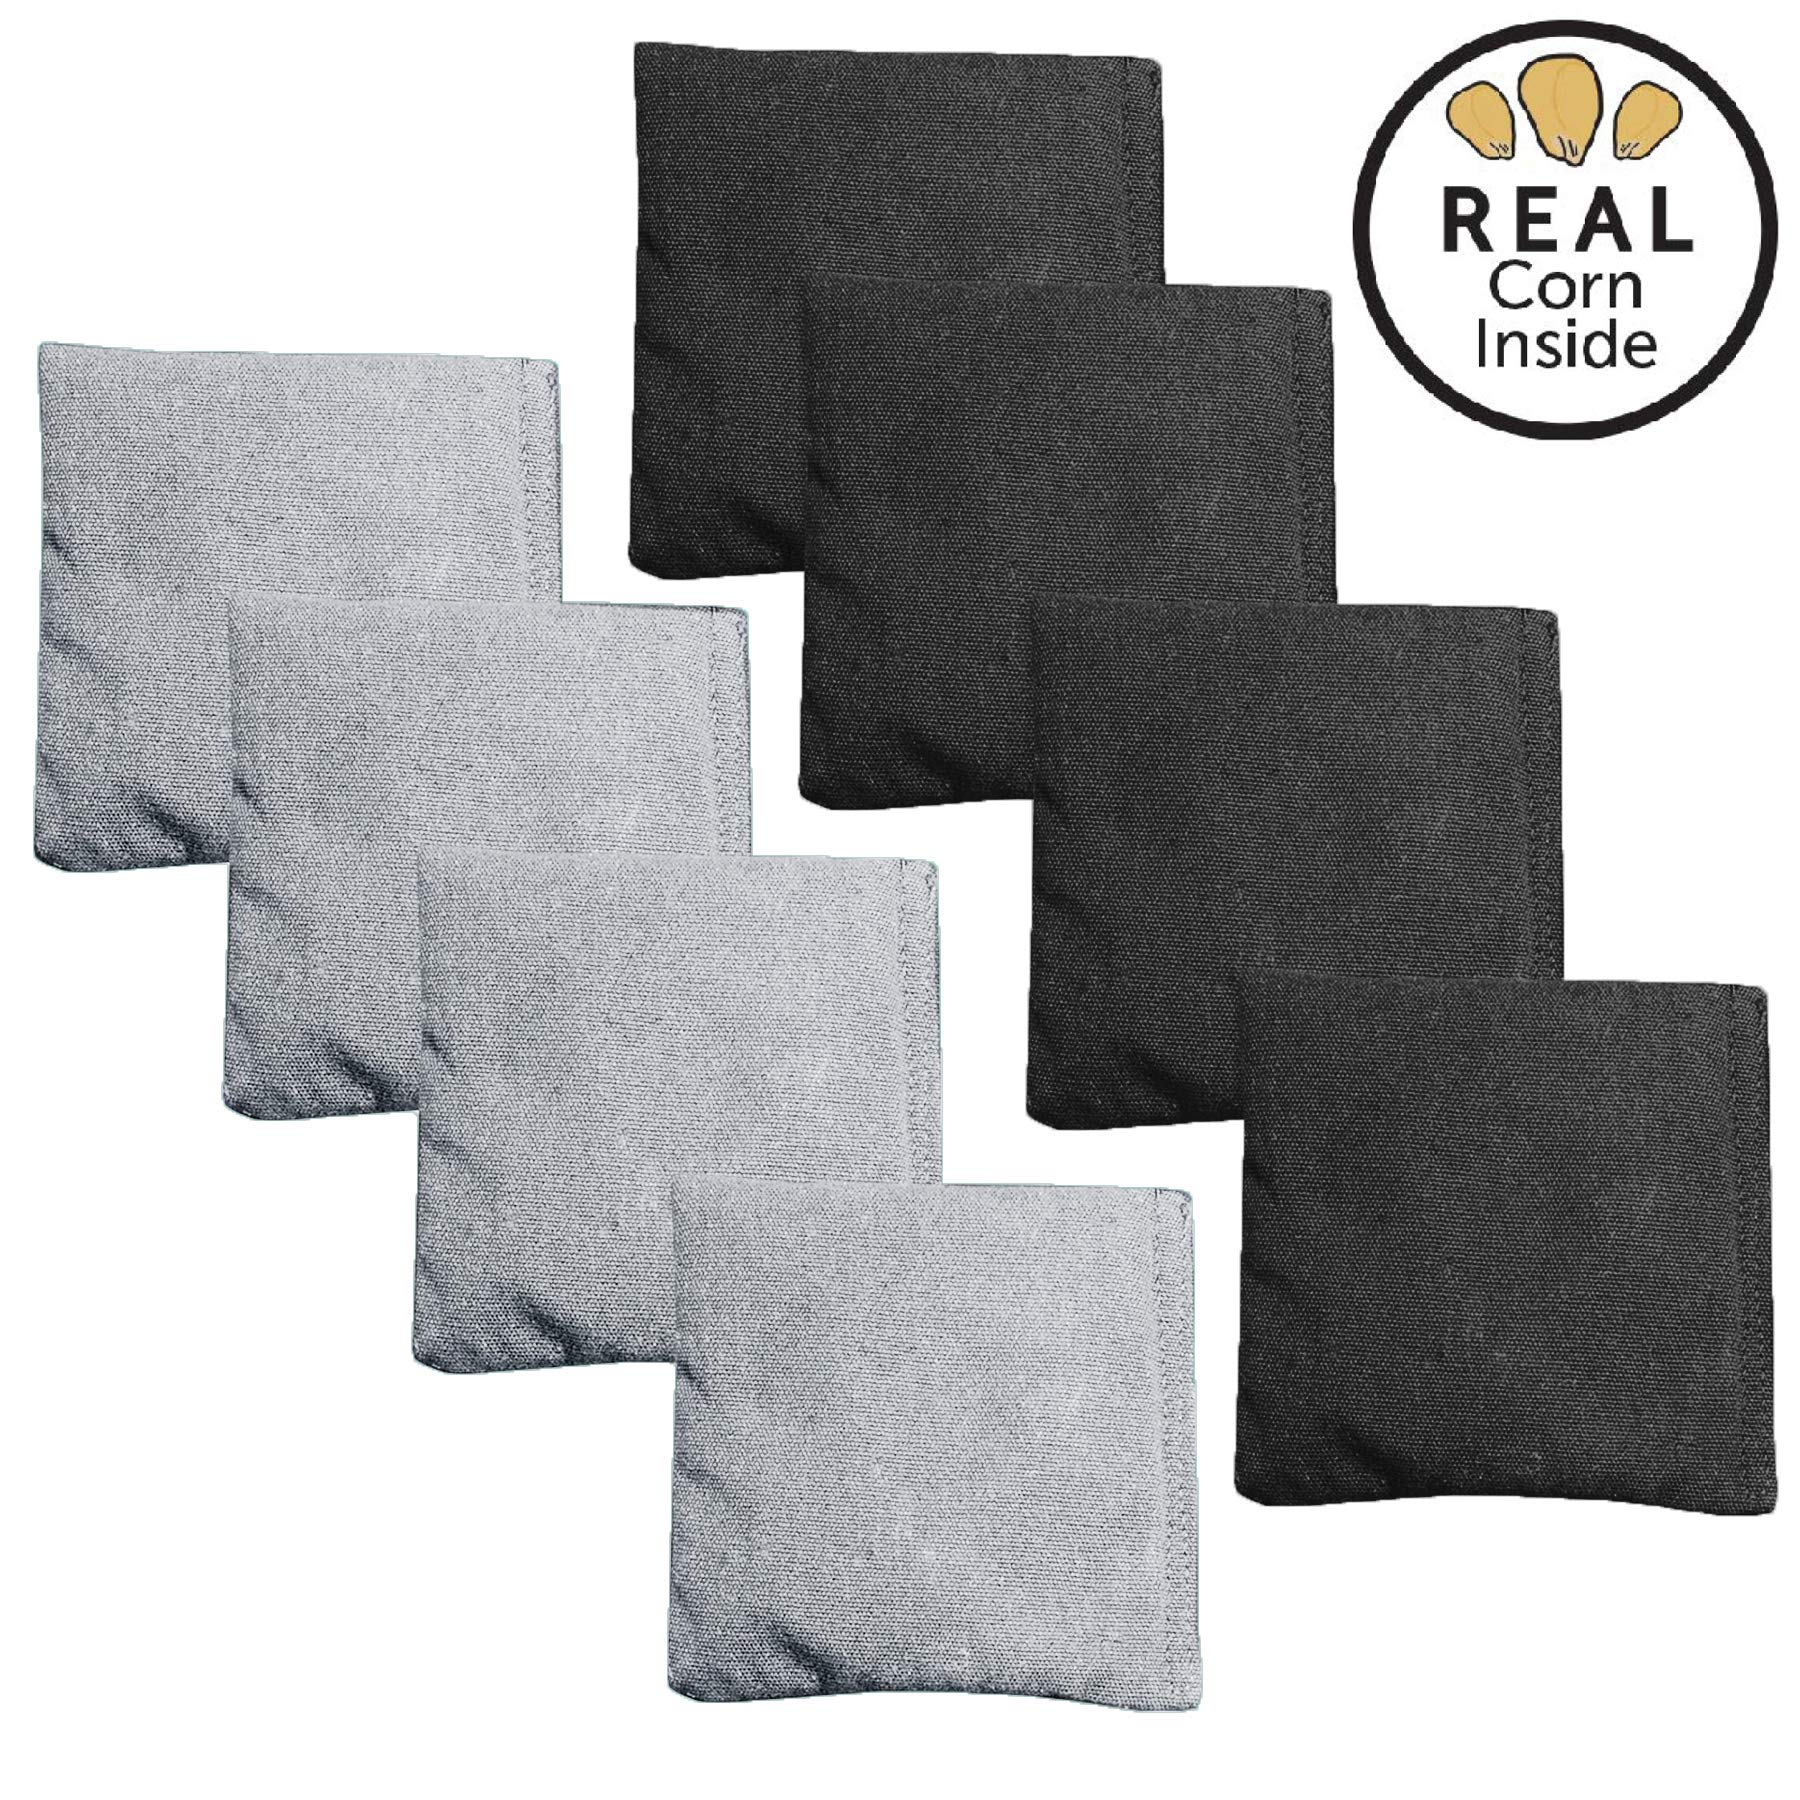 Corn Filled Cornhole Bags - Set of 8 Bean Bags for Corn Hole Game - Regulation Size & Weight - Silver and Black by Play Platoon